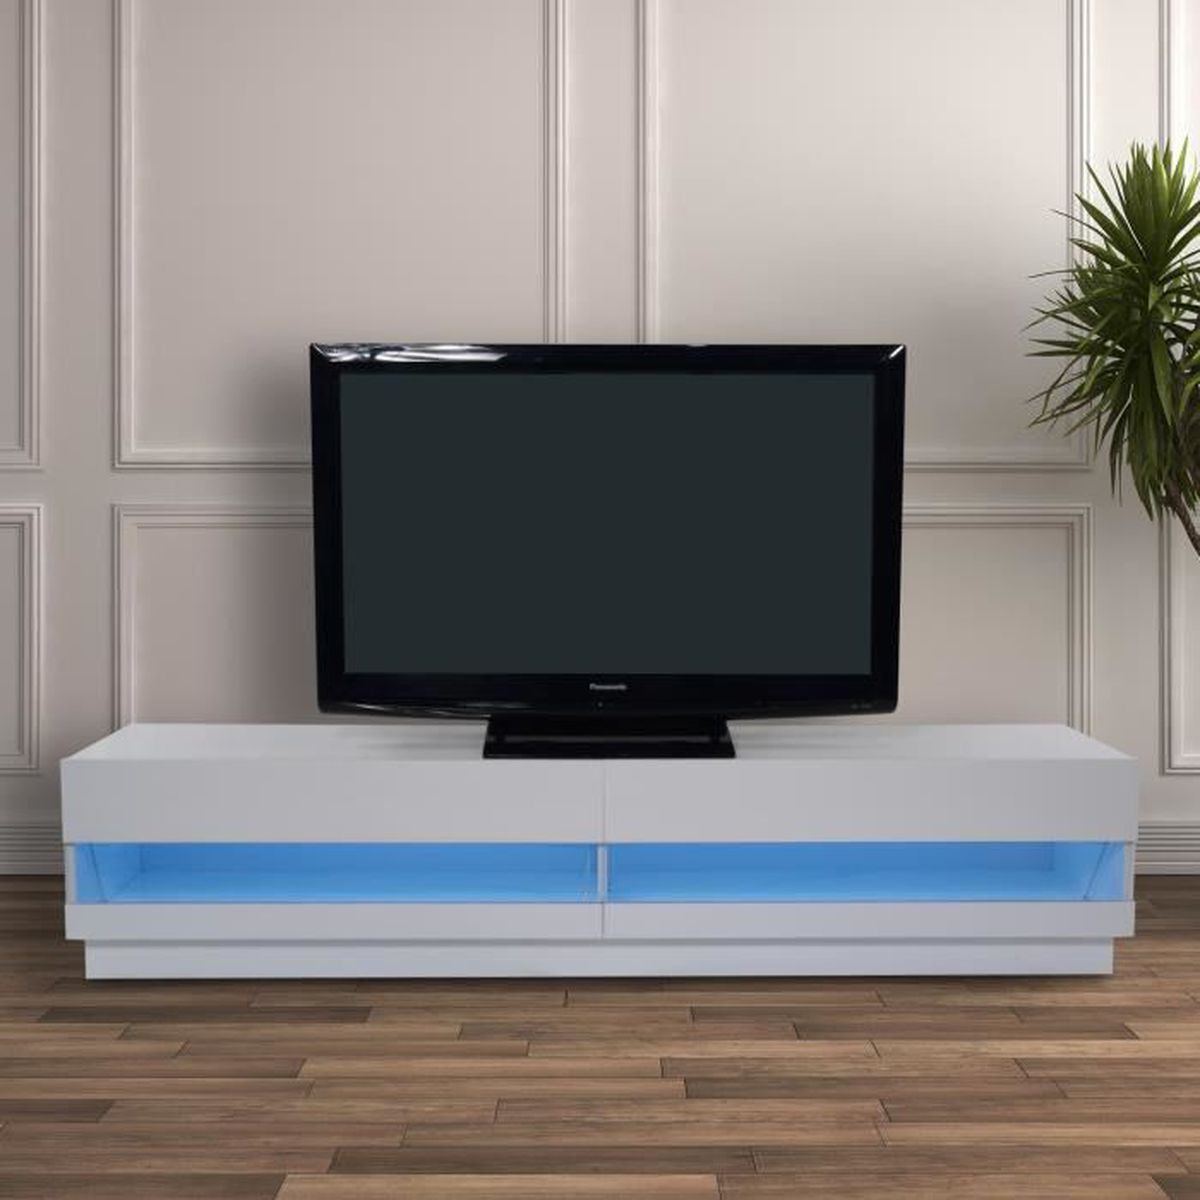 Meuble tv bas design contemporain double placard verre for Placard design contemporain